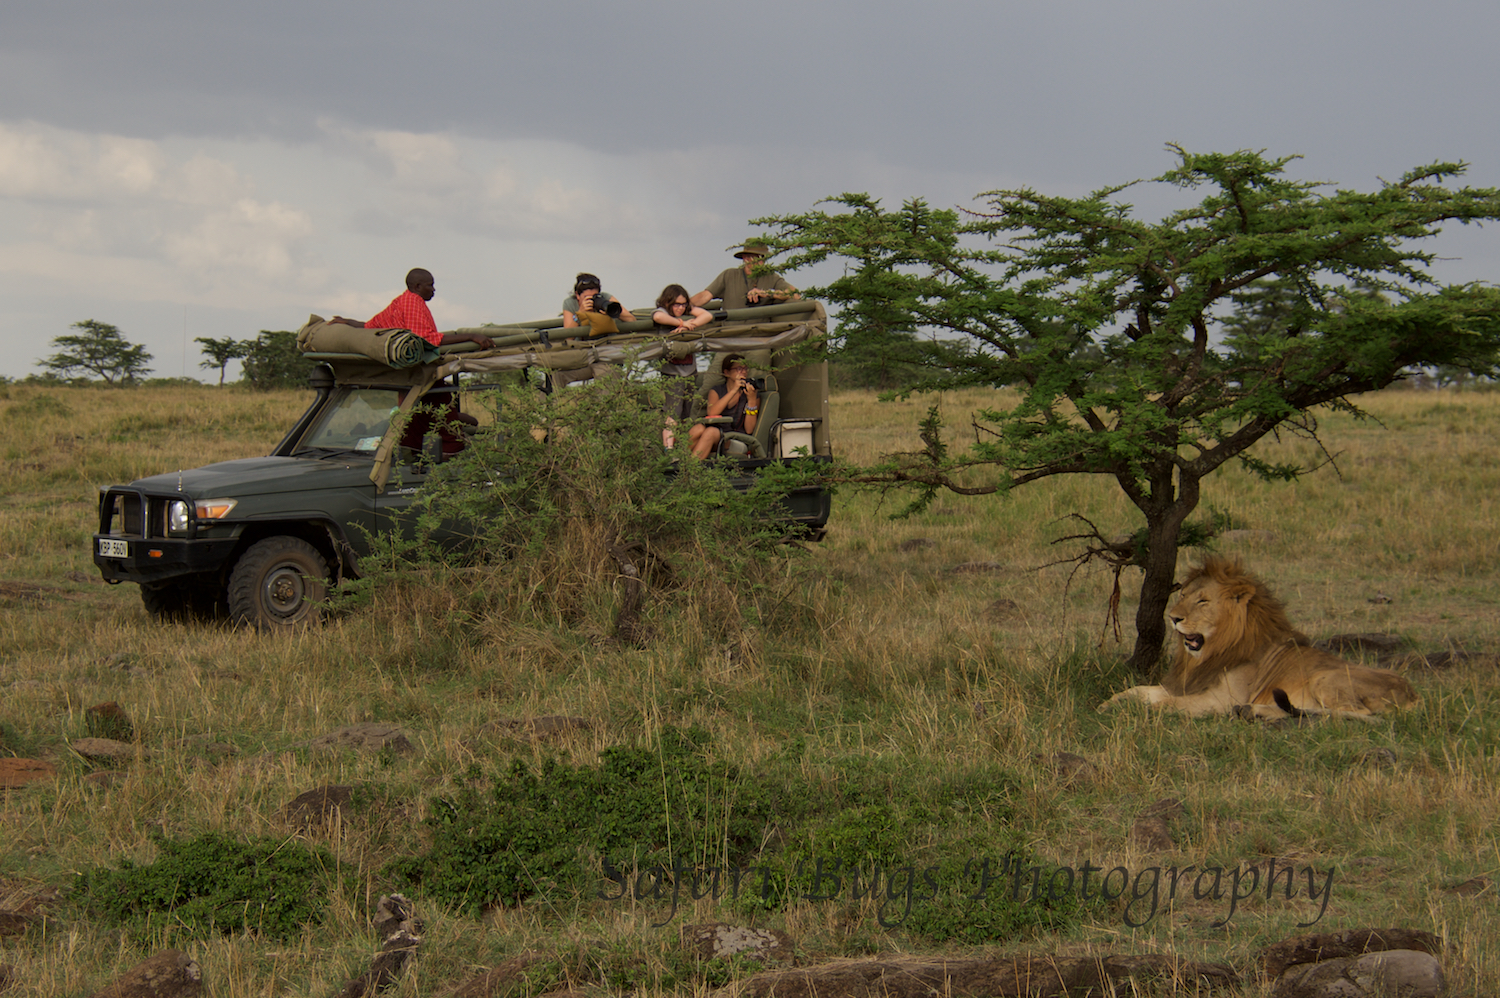 A family staying at Serian getting some shots of the male lion.